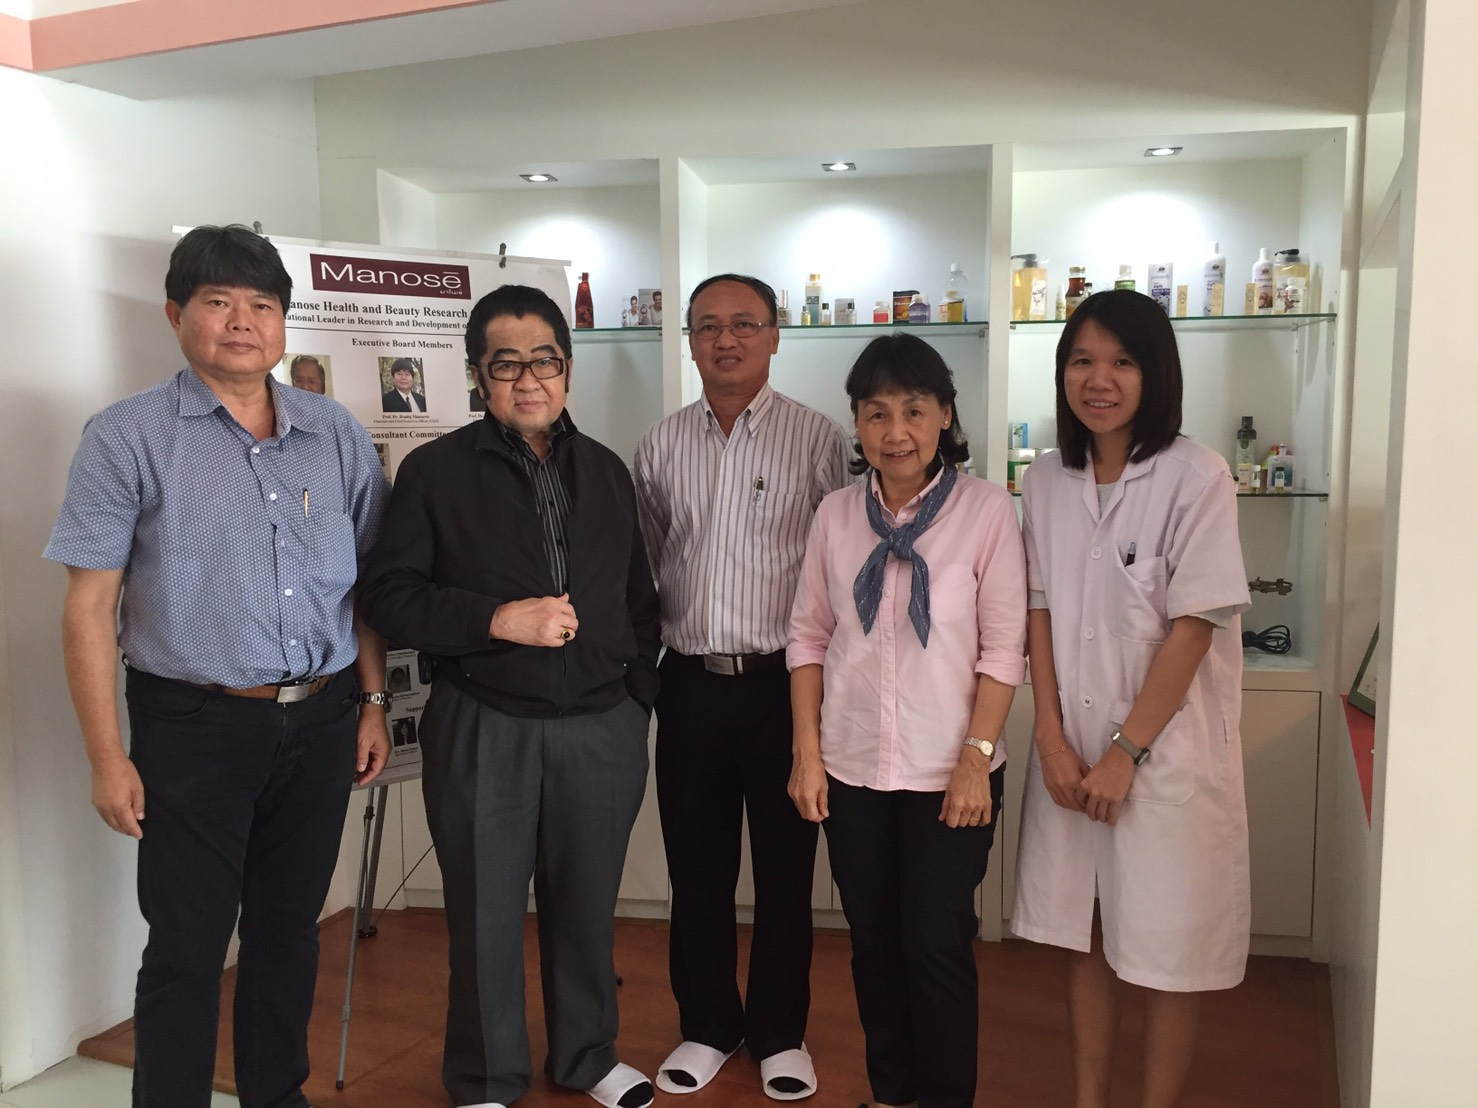 Mr. Somneuk Suchaitanawanich (Director, Herb and Thai Traditional Medicine Division) and Dr. Surapong Ambhanwong (Vice Director of Phyathai Hospital executive members) have visited Manose Health and Beauty Research Center